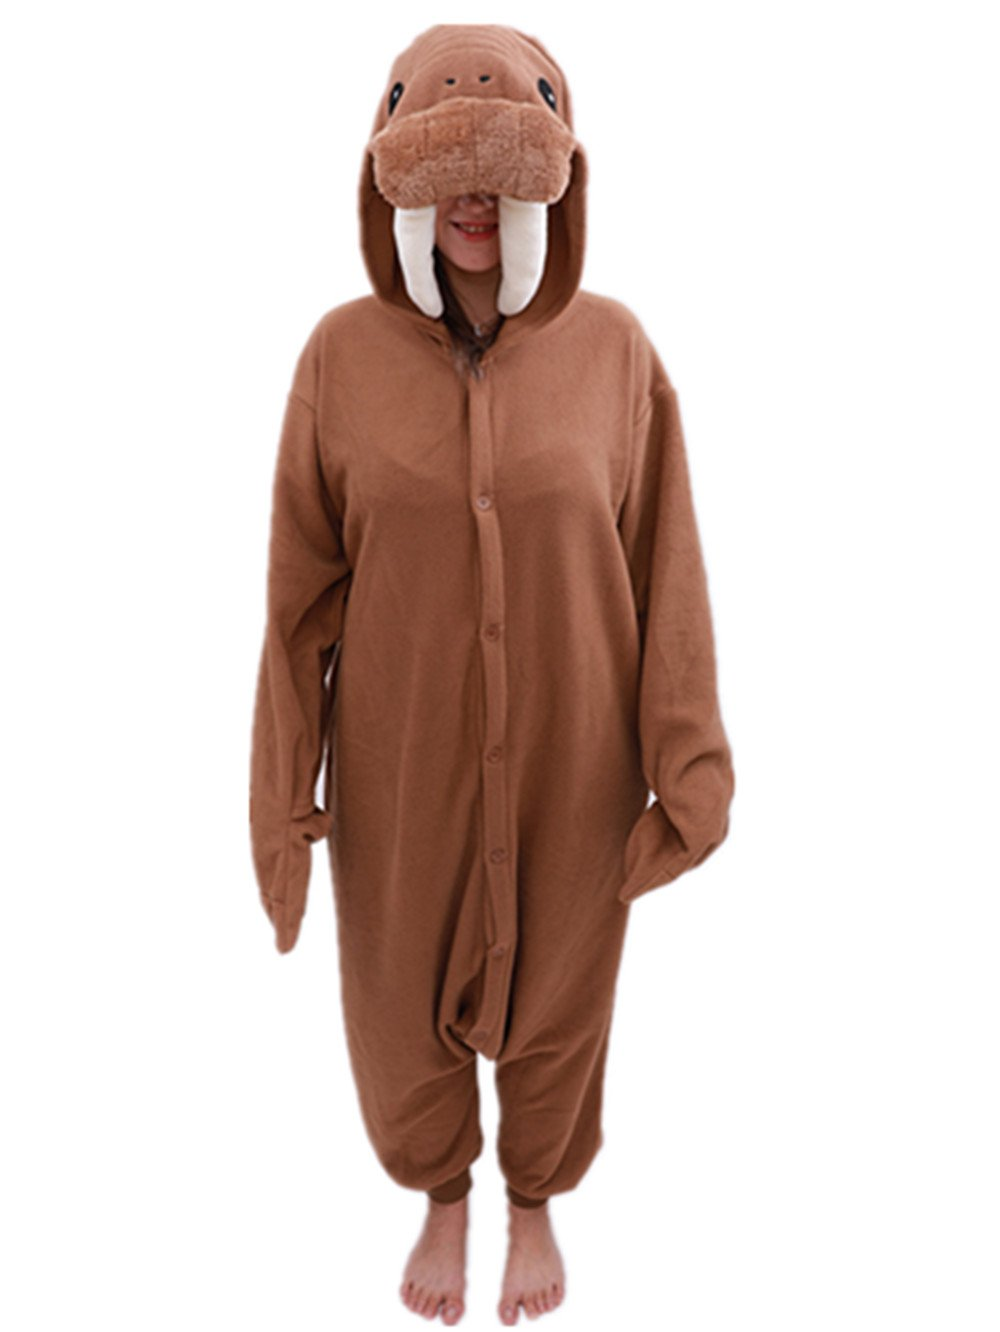 Adult Walrus Onesie Pajamas Animal One Piece Cospaly Costume (X-Large, Brown)